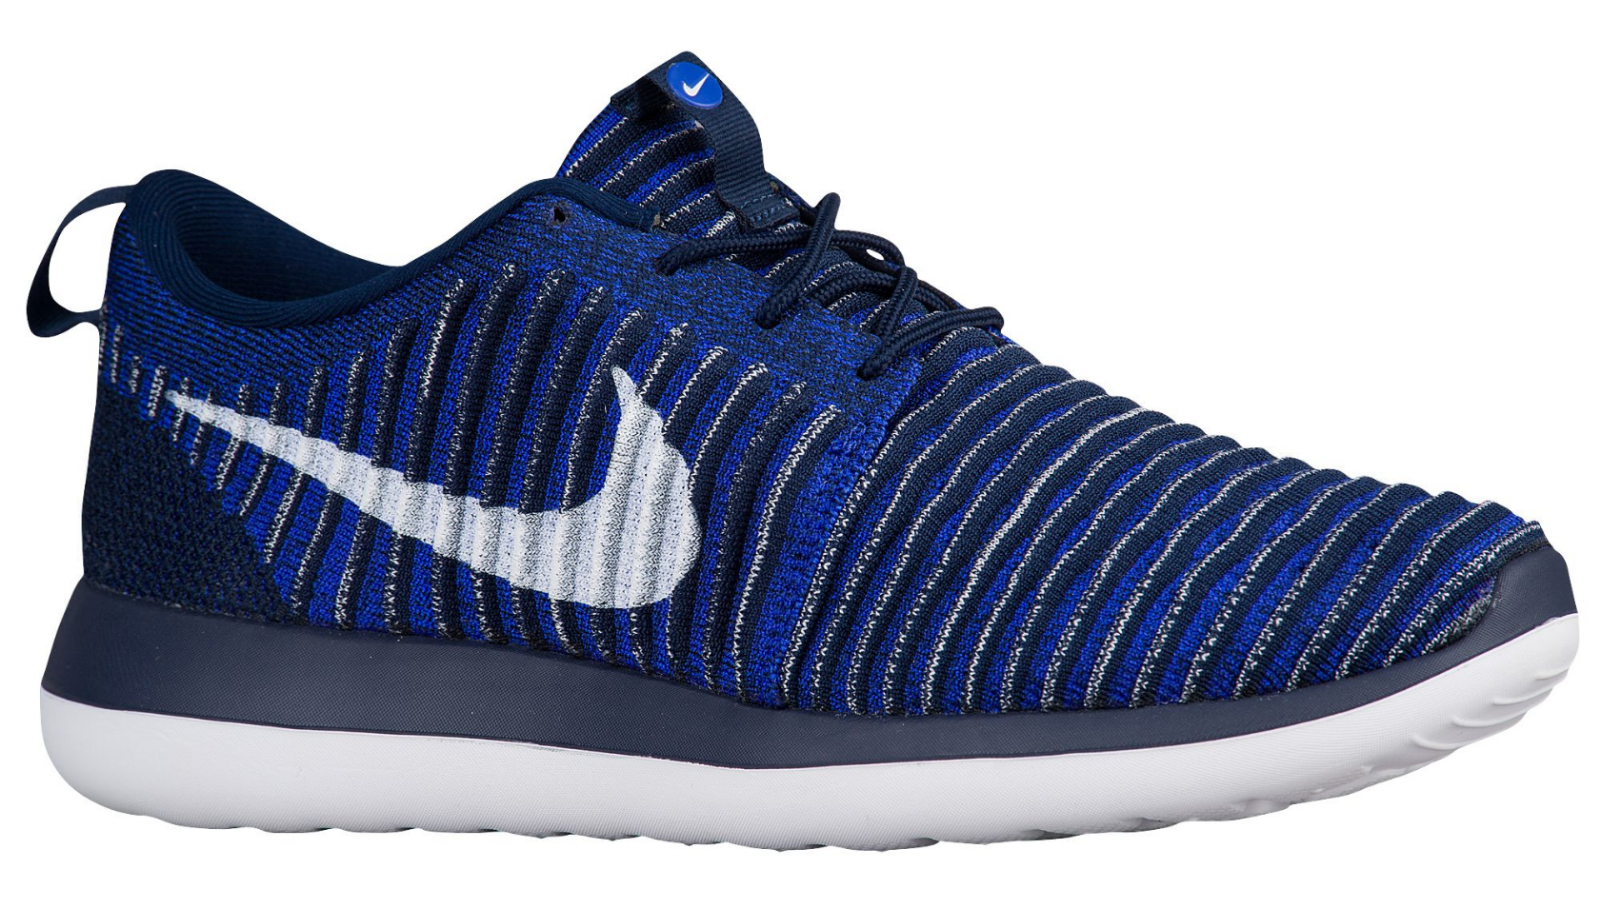 NIB NIKE homme 9.5 ROSHE TWO fonctionnement FLYKNIT Bleu 844833 402 fonctionnement TWO LIFESTYLE chaussures 130 fb95f5